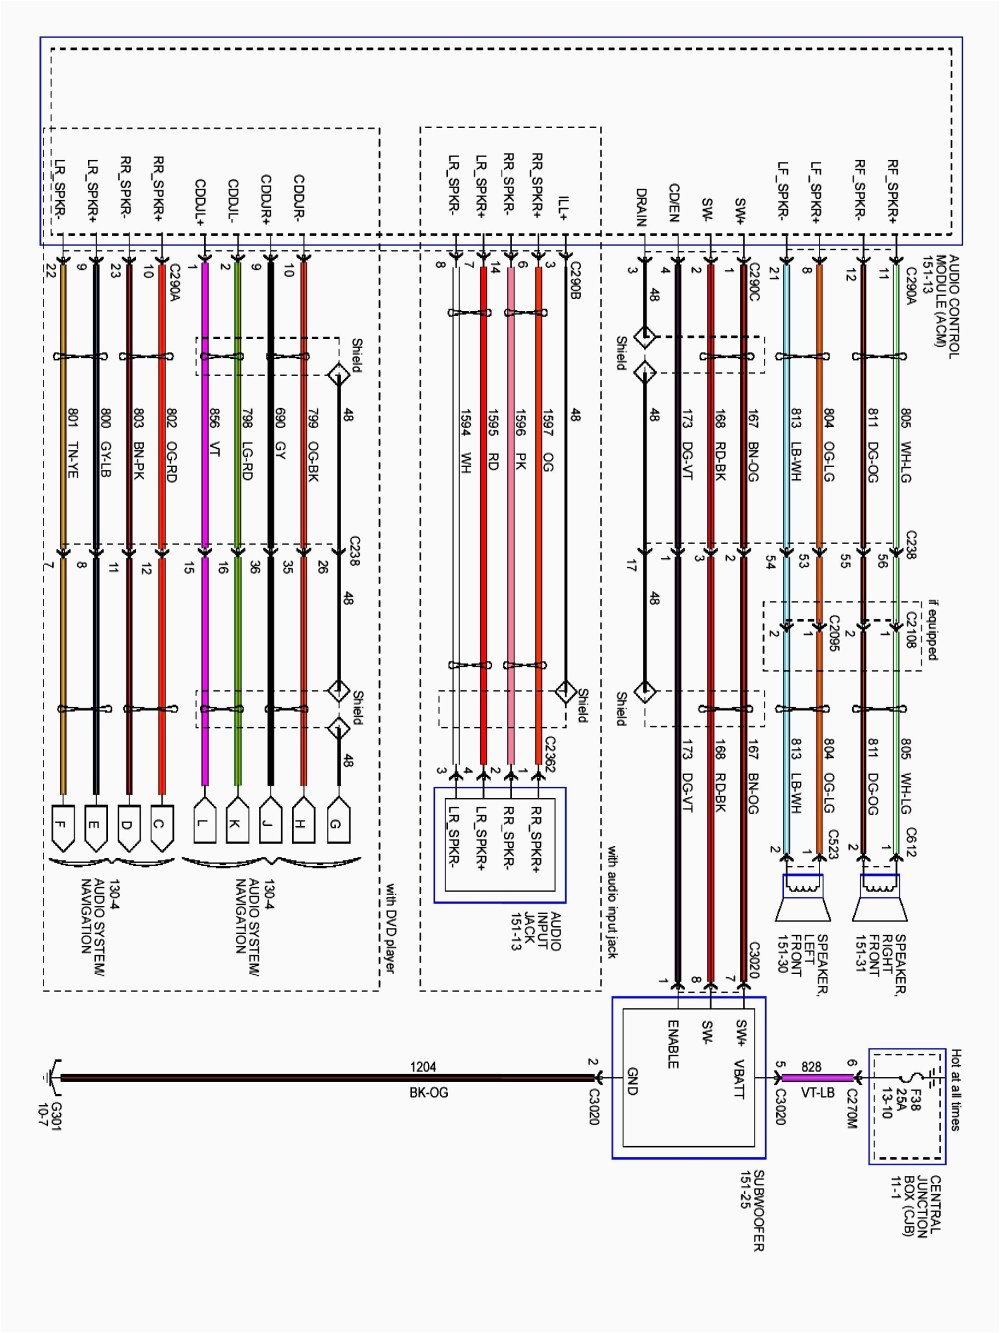 medium resolution of ford expedition headlight wiring harness wiring diagram name 2000 expedition wiring diagram wiring diagram ford expedition